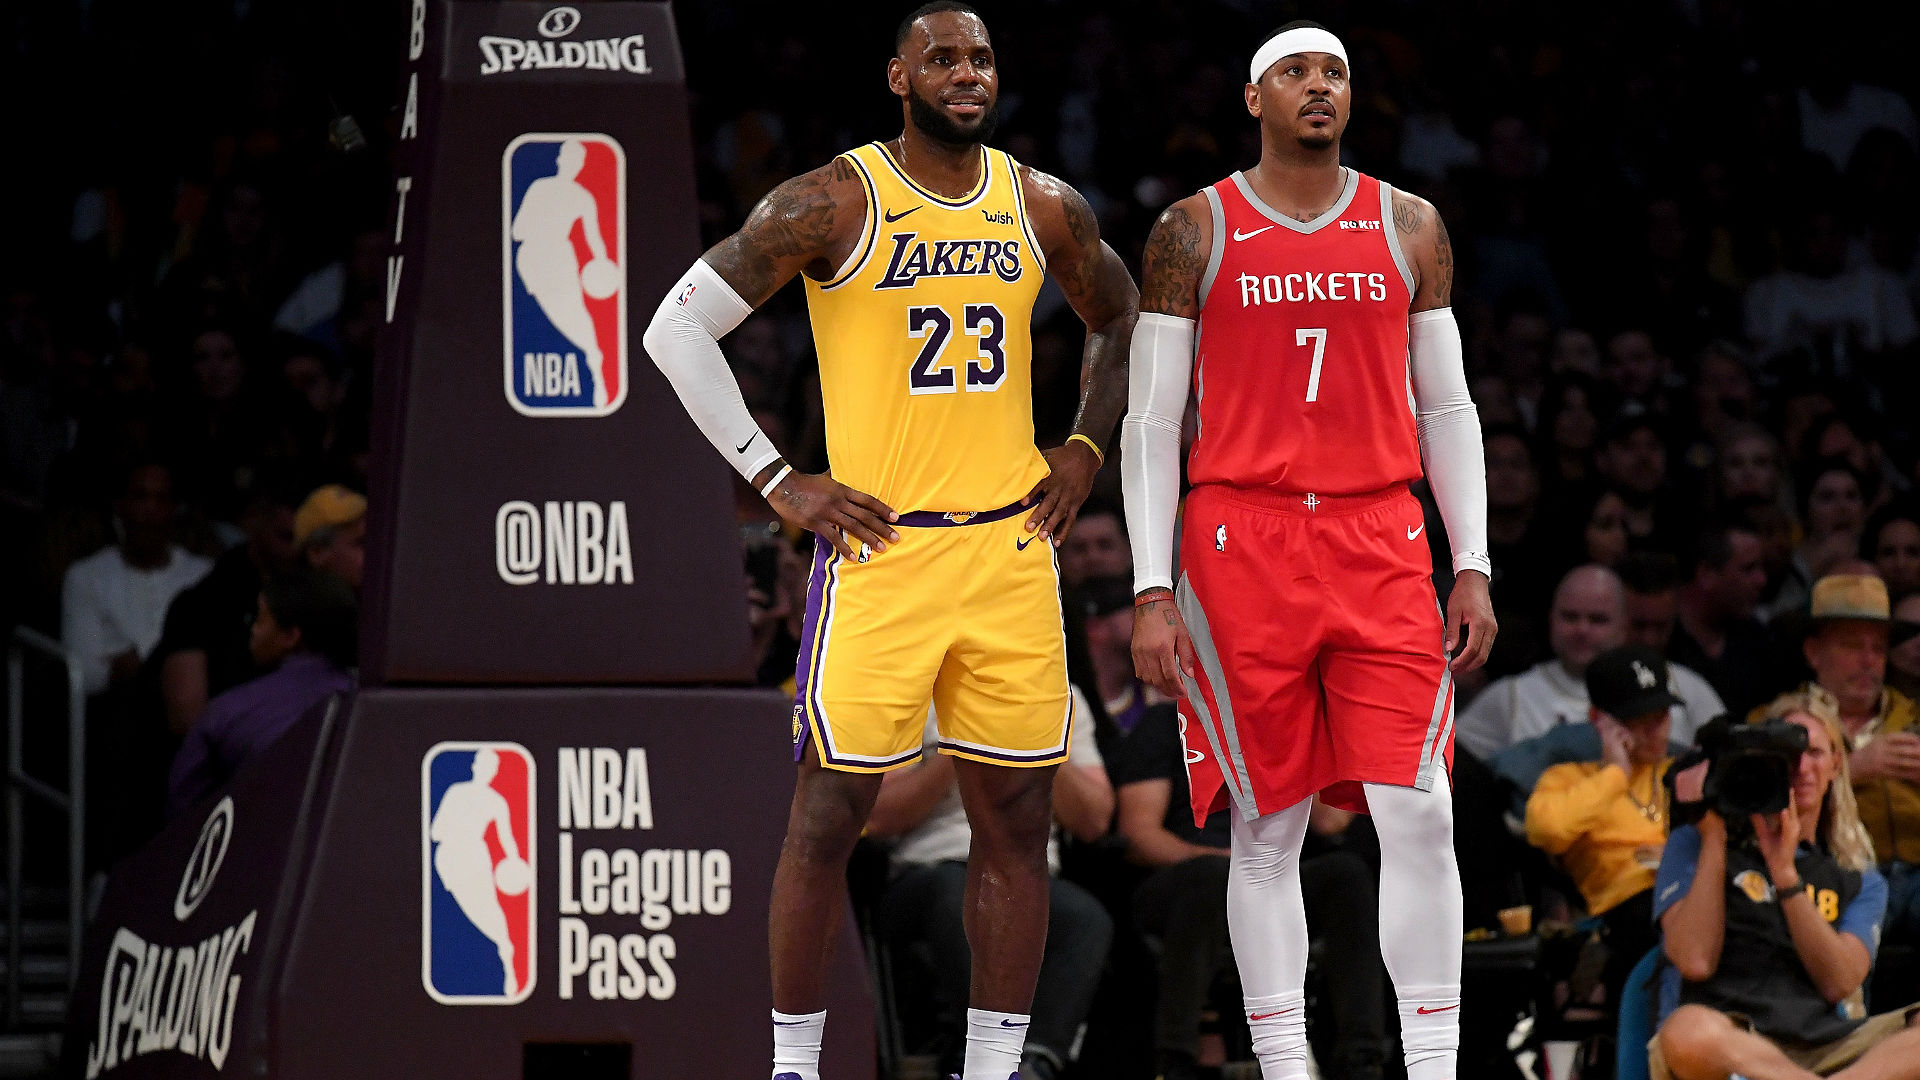 LeBron James wants Lakers to acquire Carmelo Anthony, report says